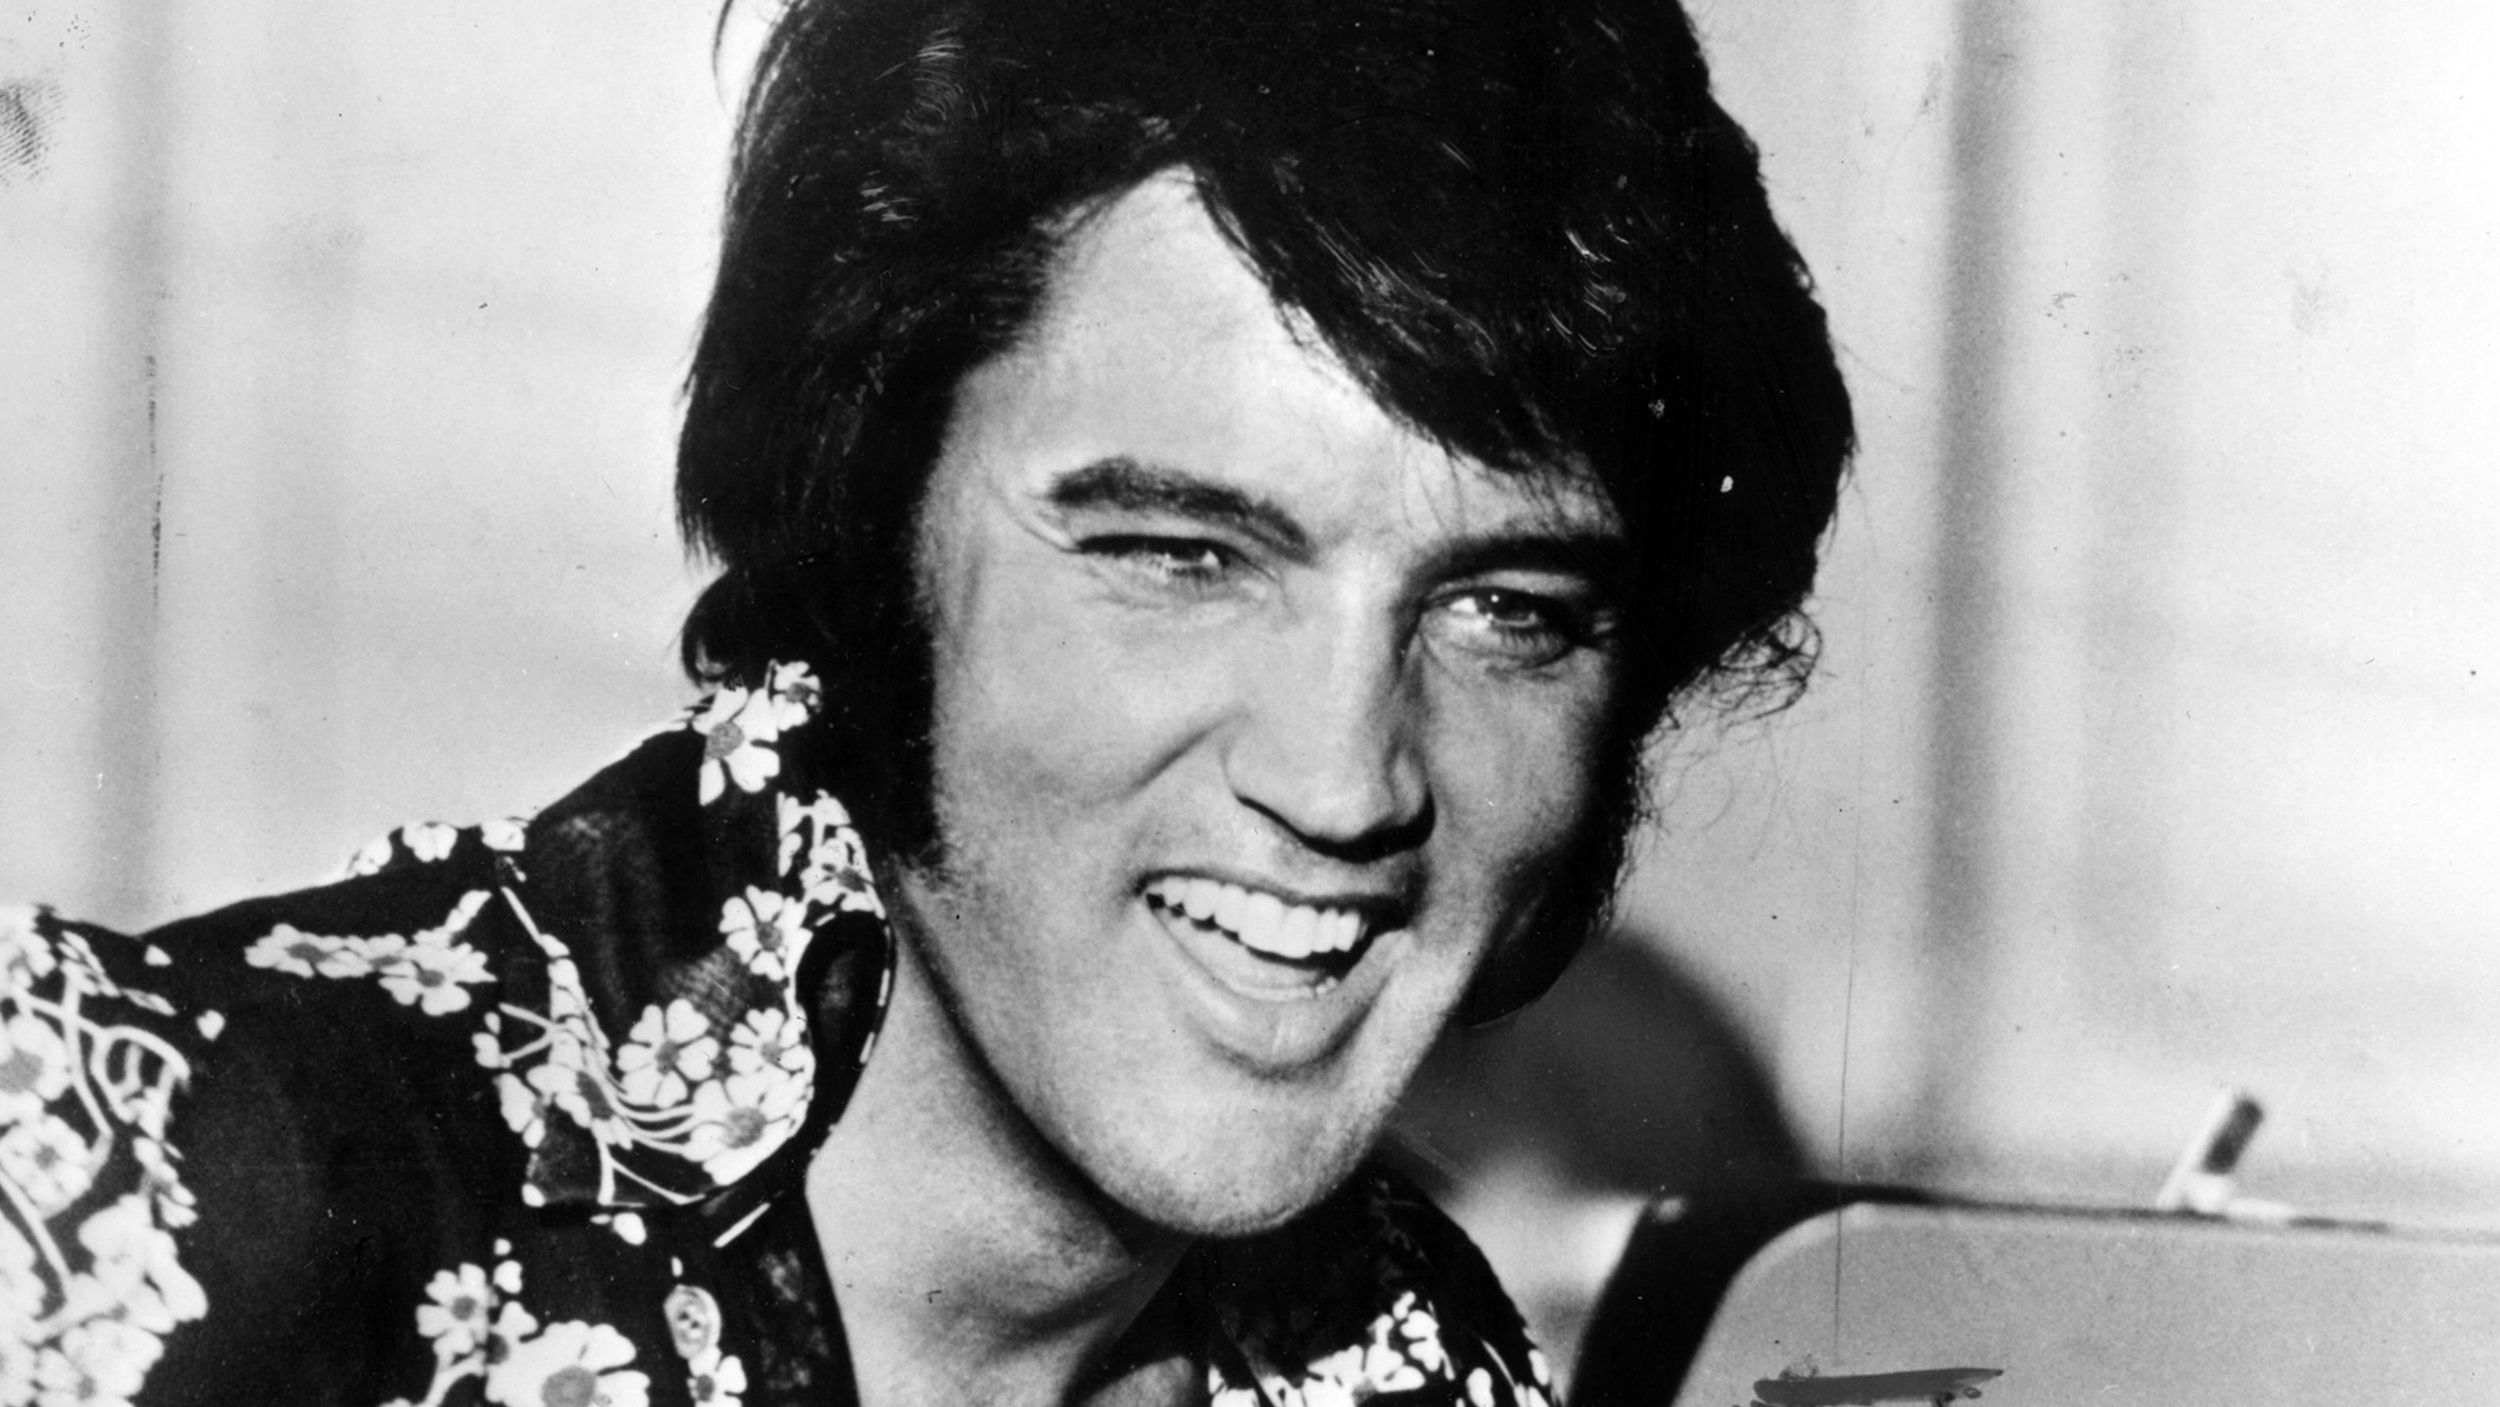 Celebrate Elvis Presley's 80th birthday with 8 must-see moments